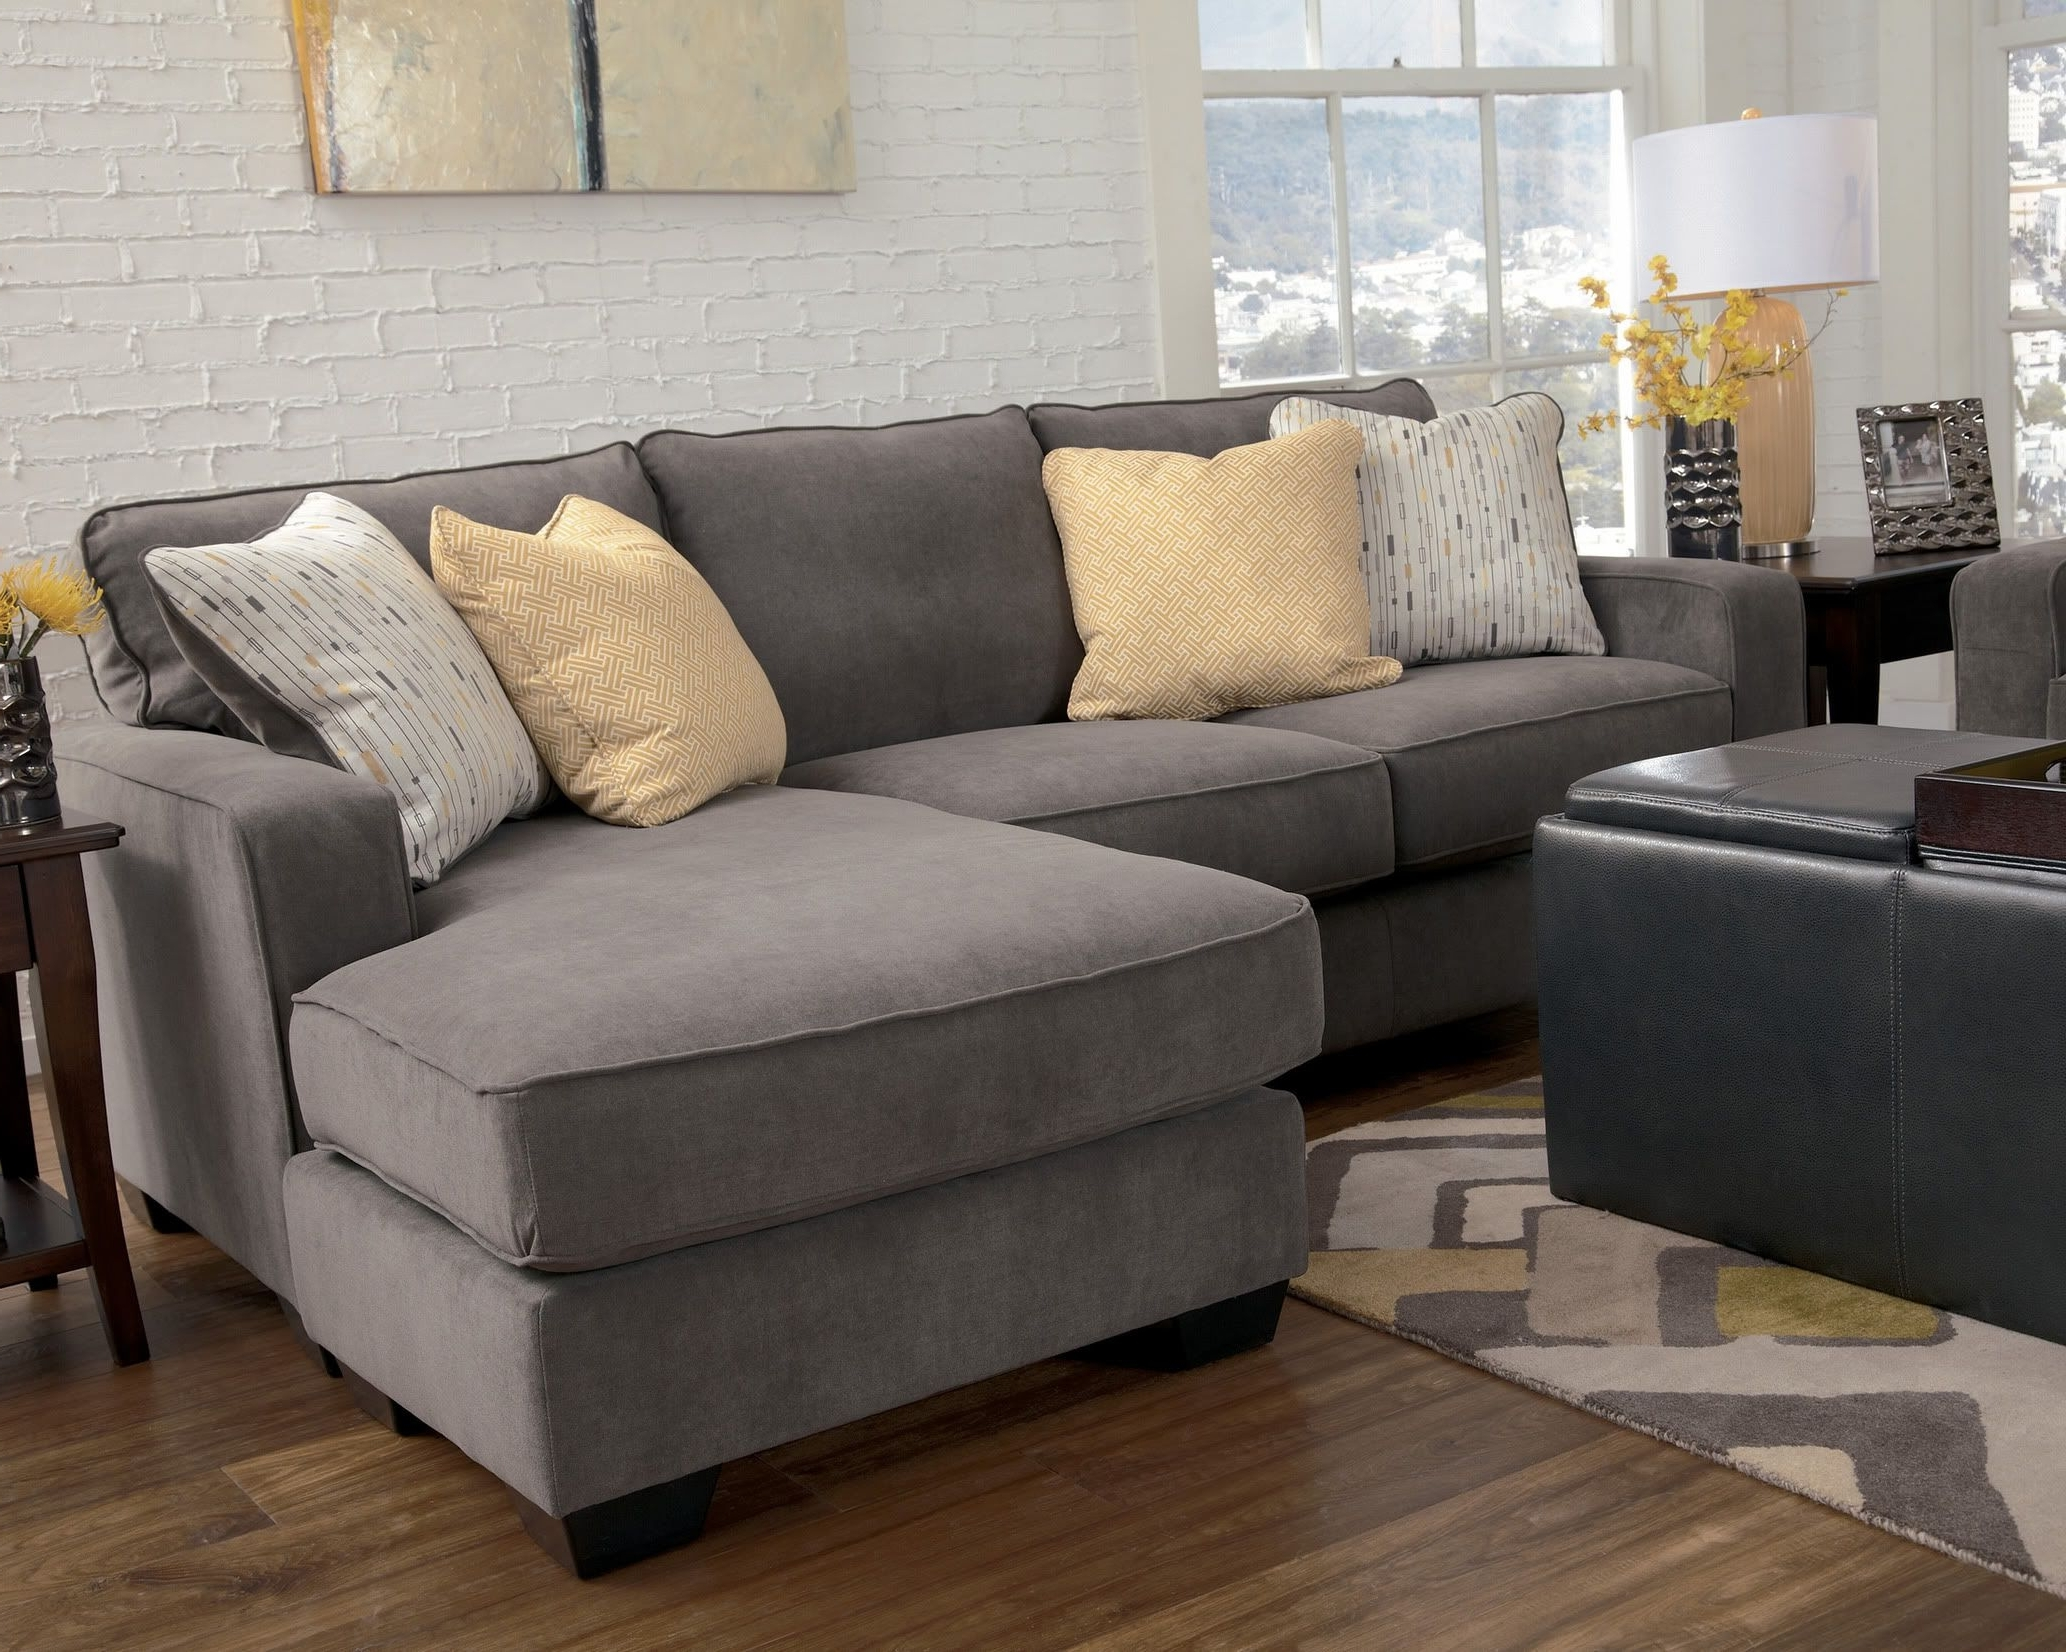 Marble Contemporary Sofa Chaise Living Room Furniture Fabric Within Preferred Sofas With Reversible Chaise (View 7 of 15)